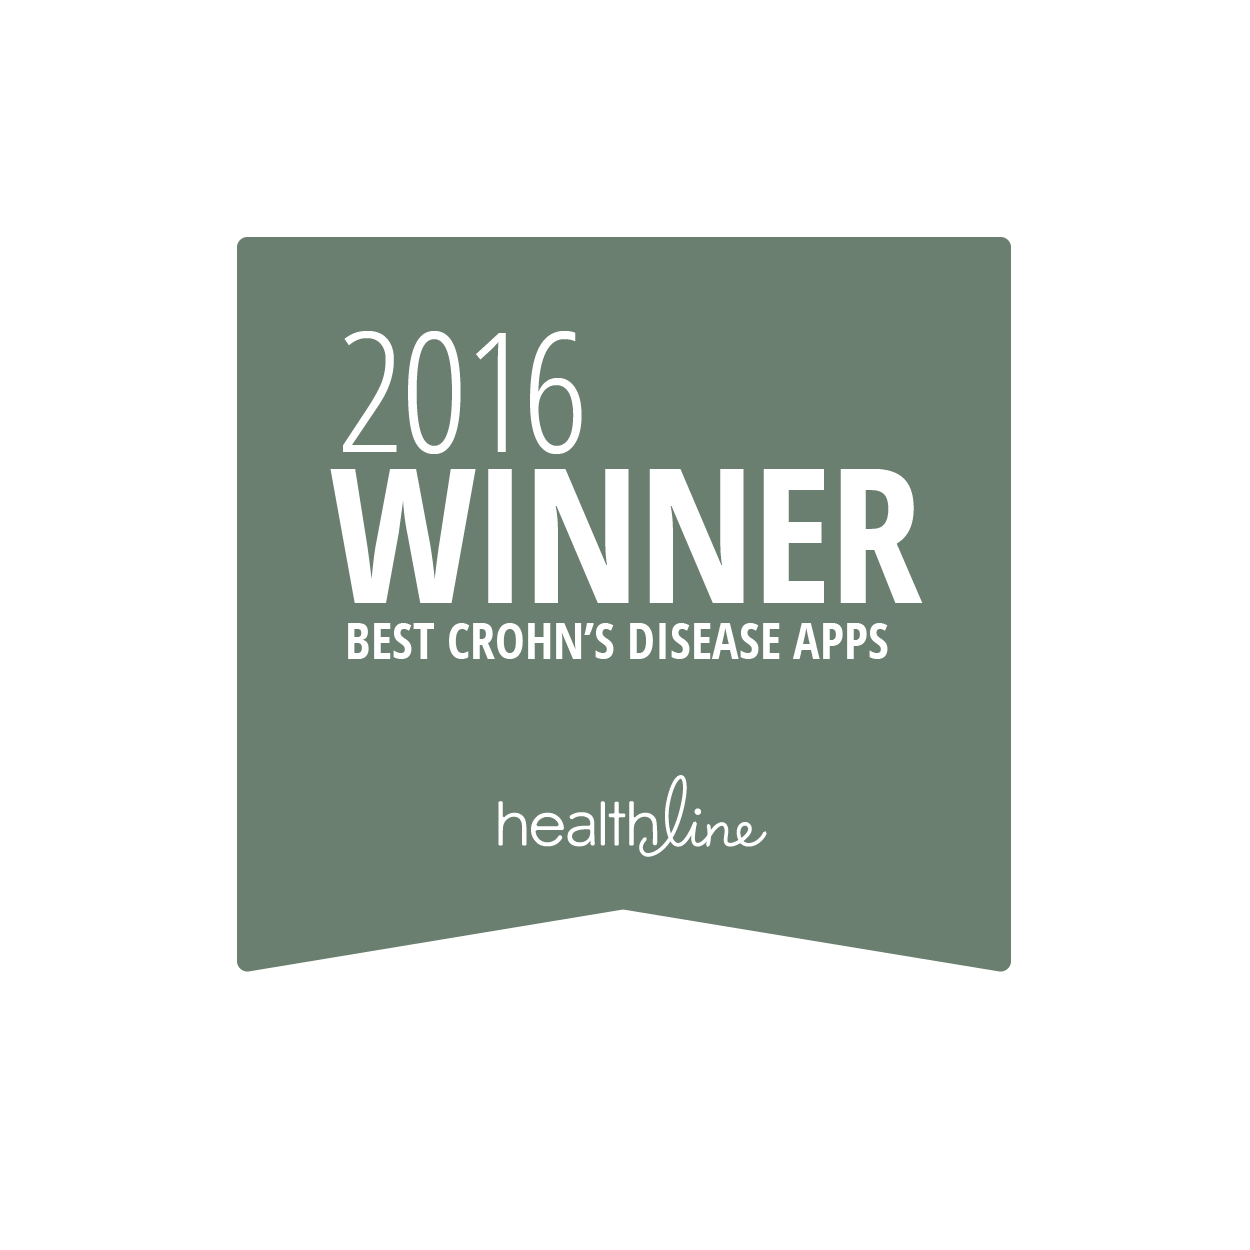 The Best Crohn's Disease Apps of the Year